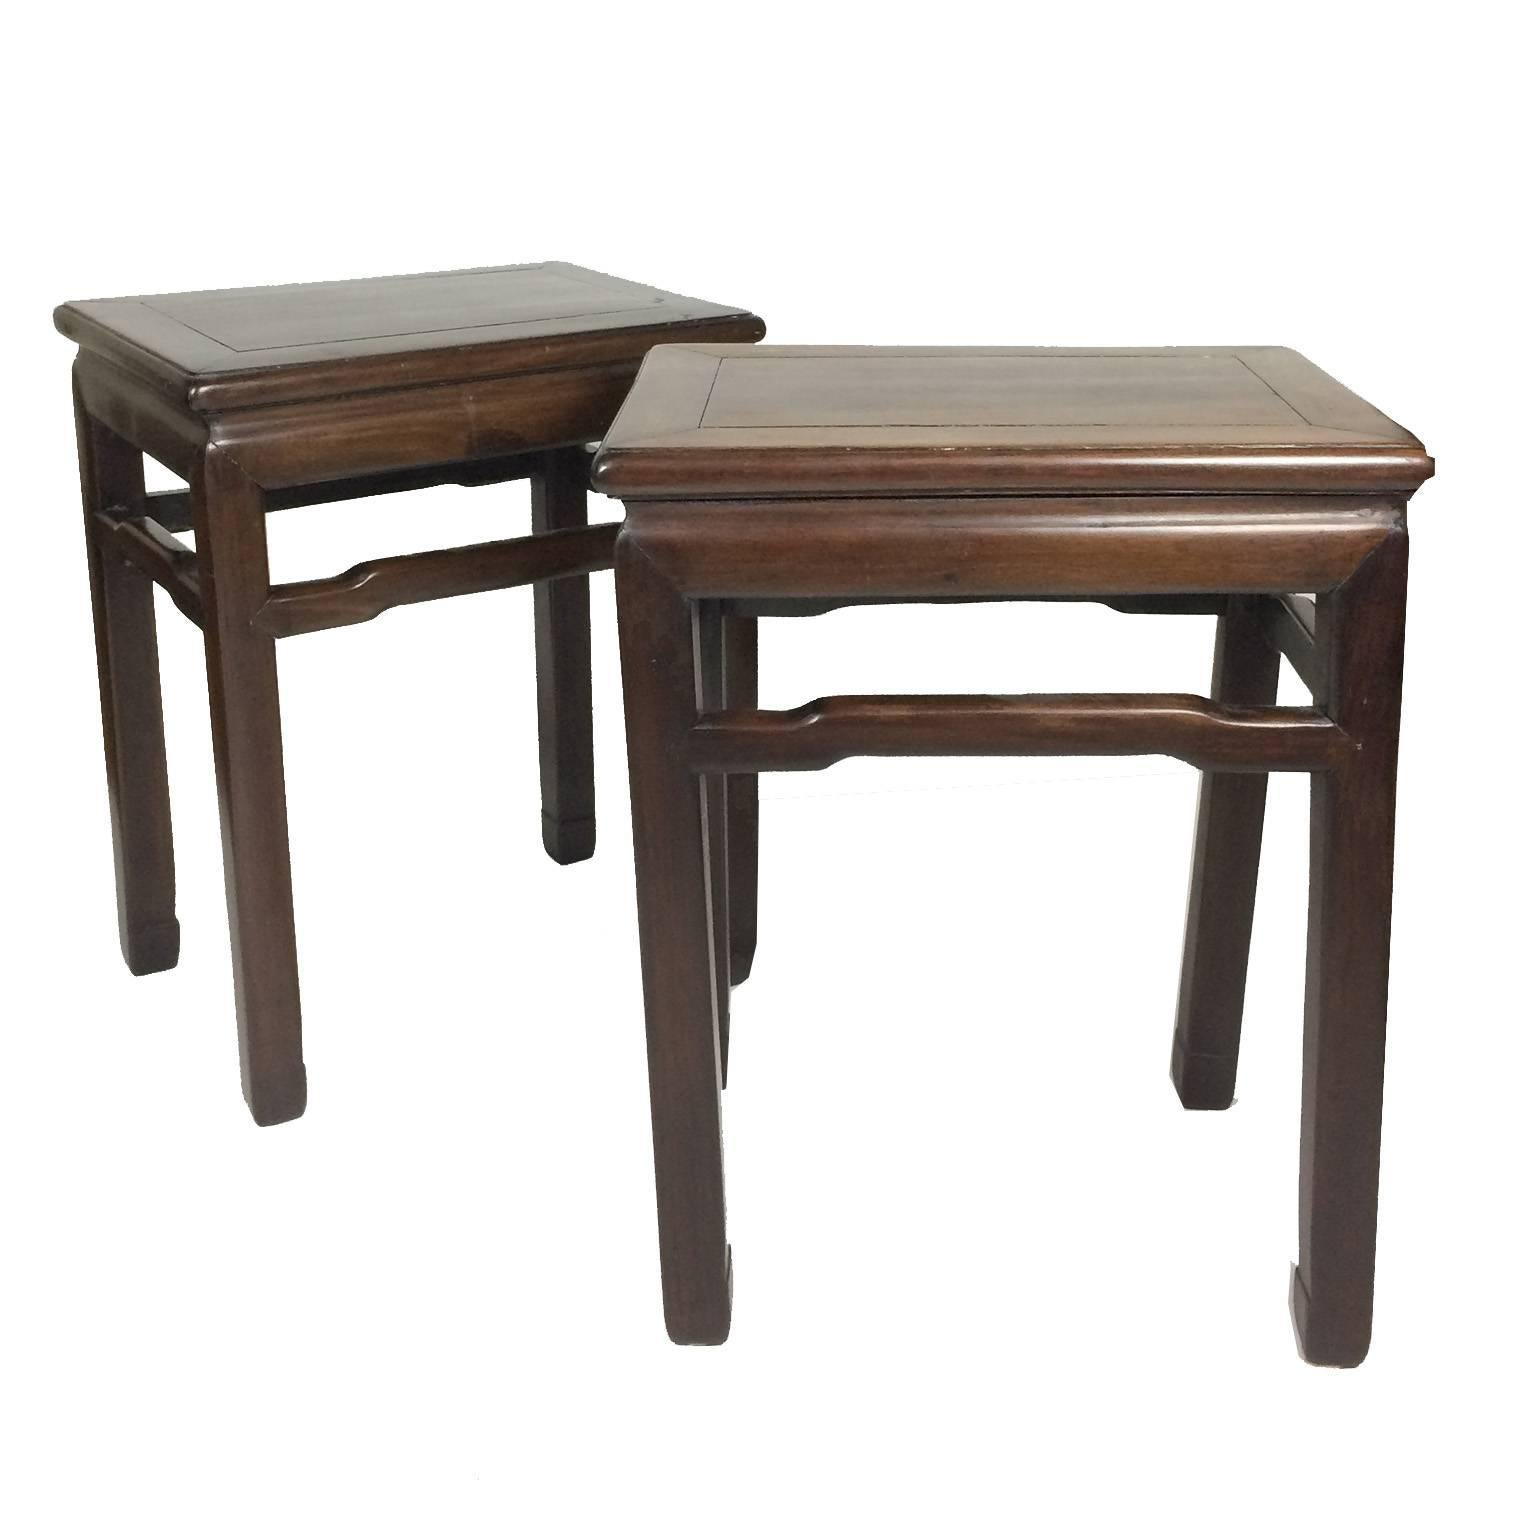 Charmant Pair Of Antique Chinese Hardwood Side Tables For Sale